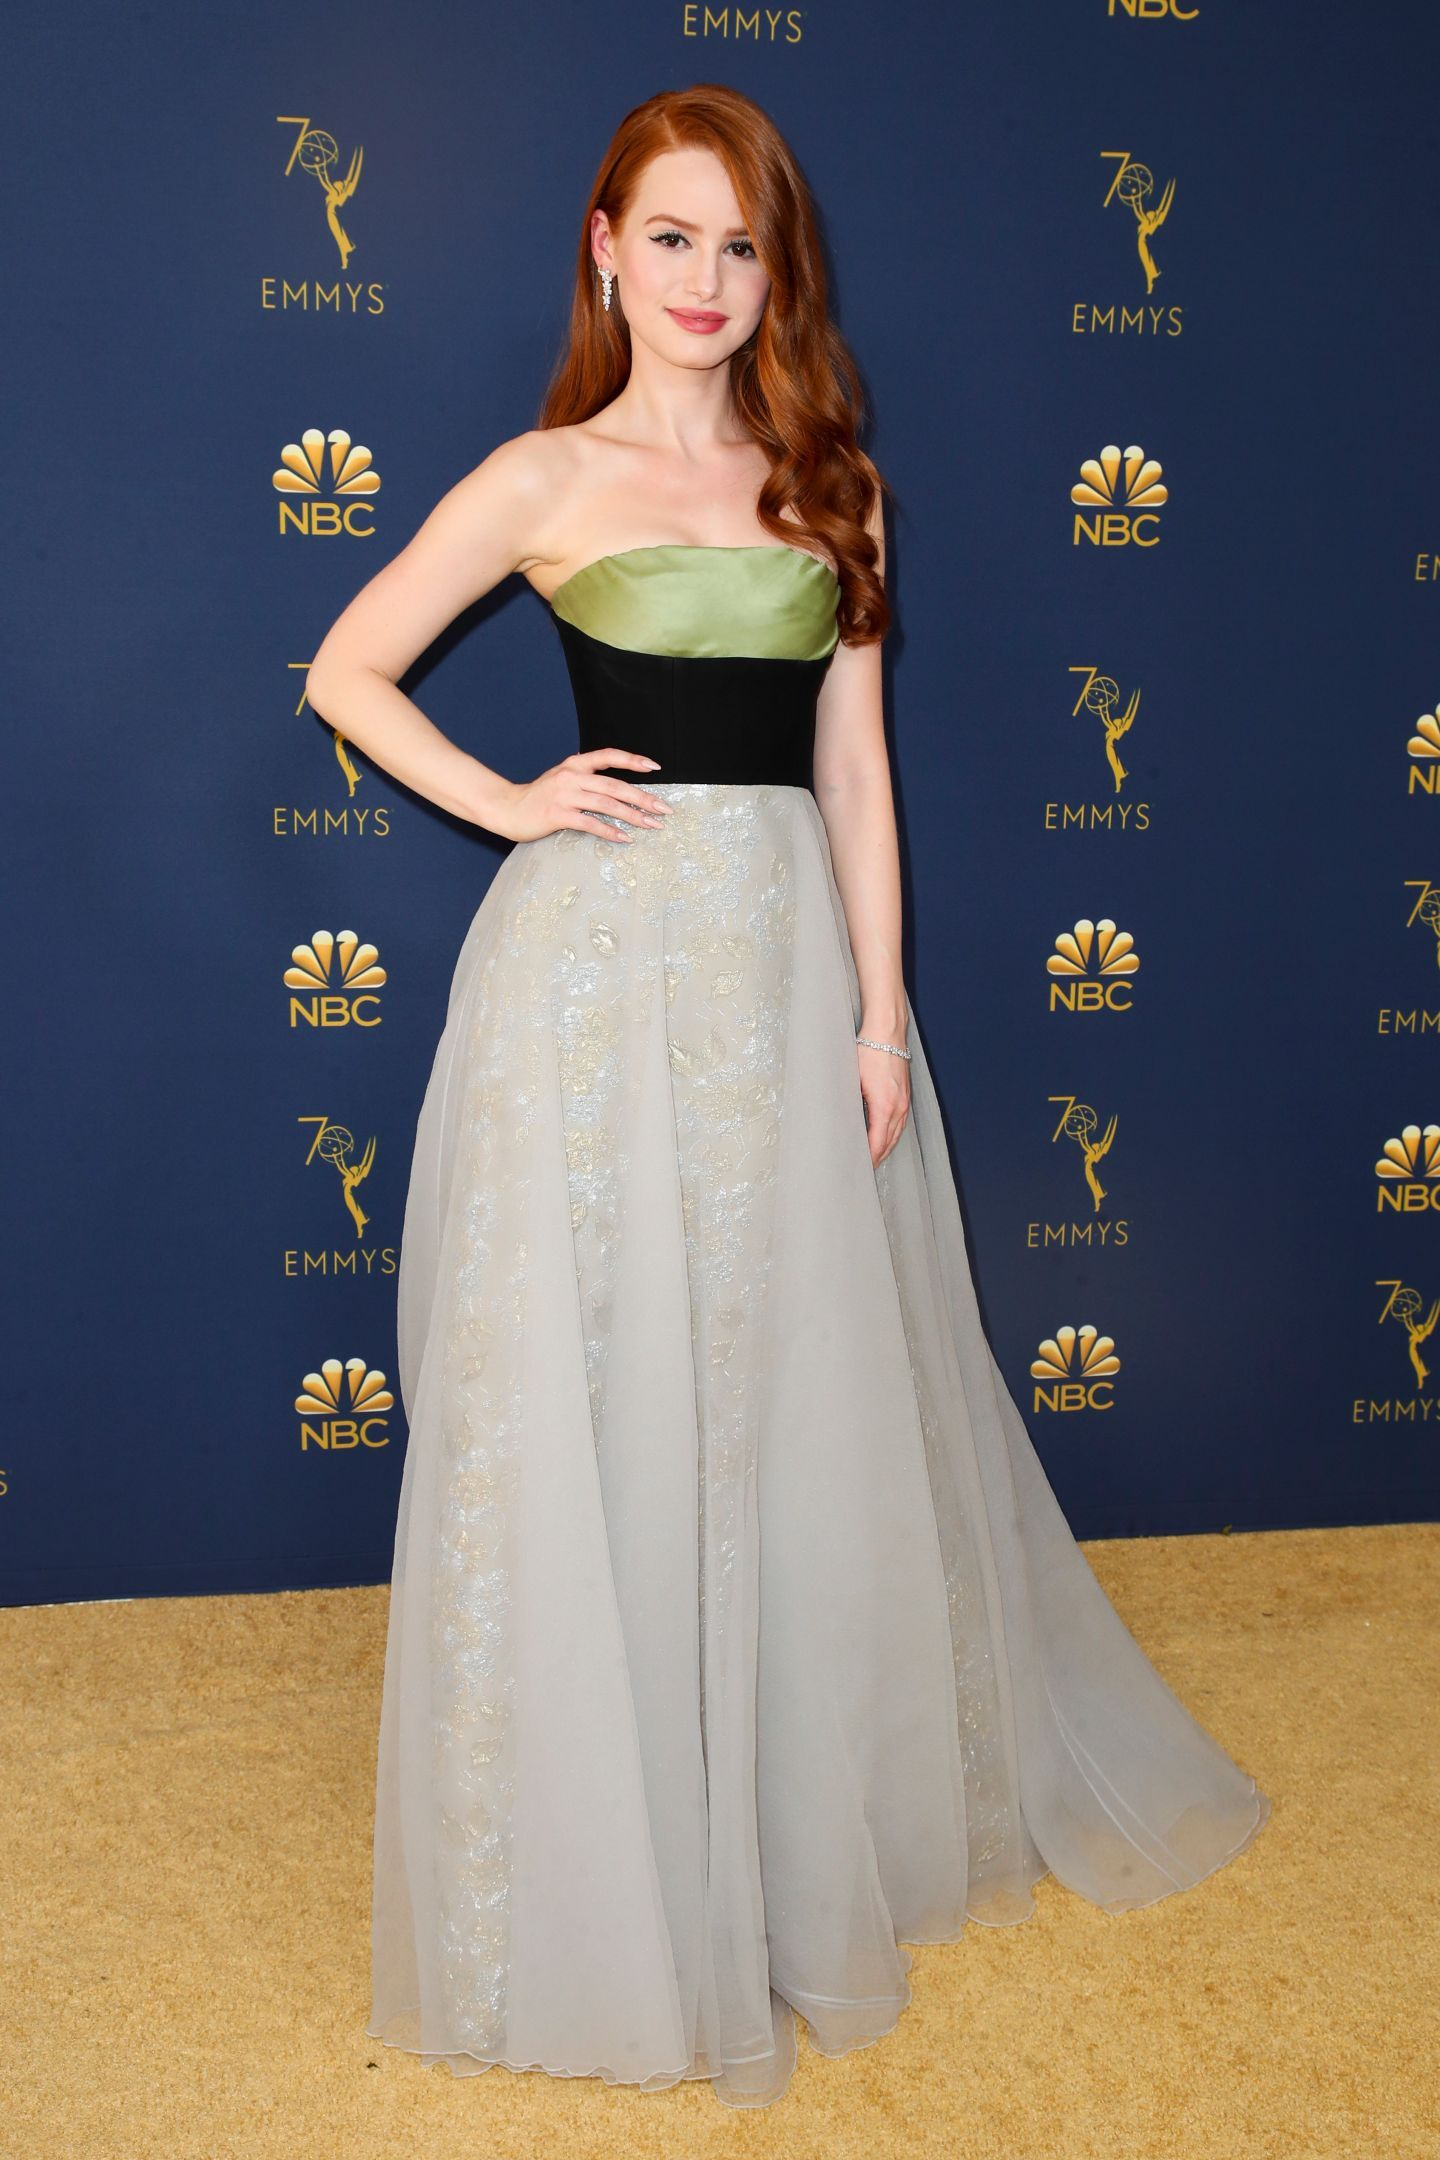 ed944ba37c4 The Emmys Red Carpet Looks That Got Everything Right in 2019 ...